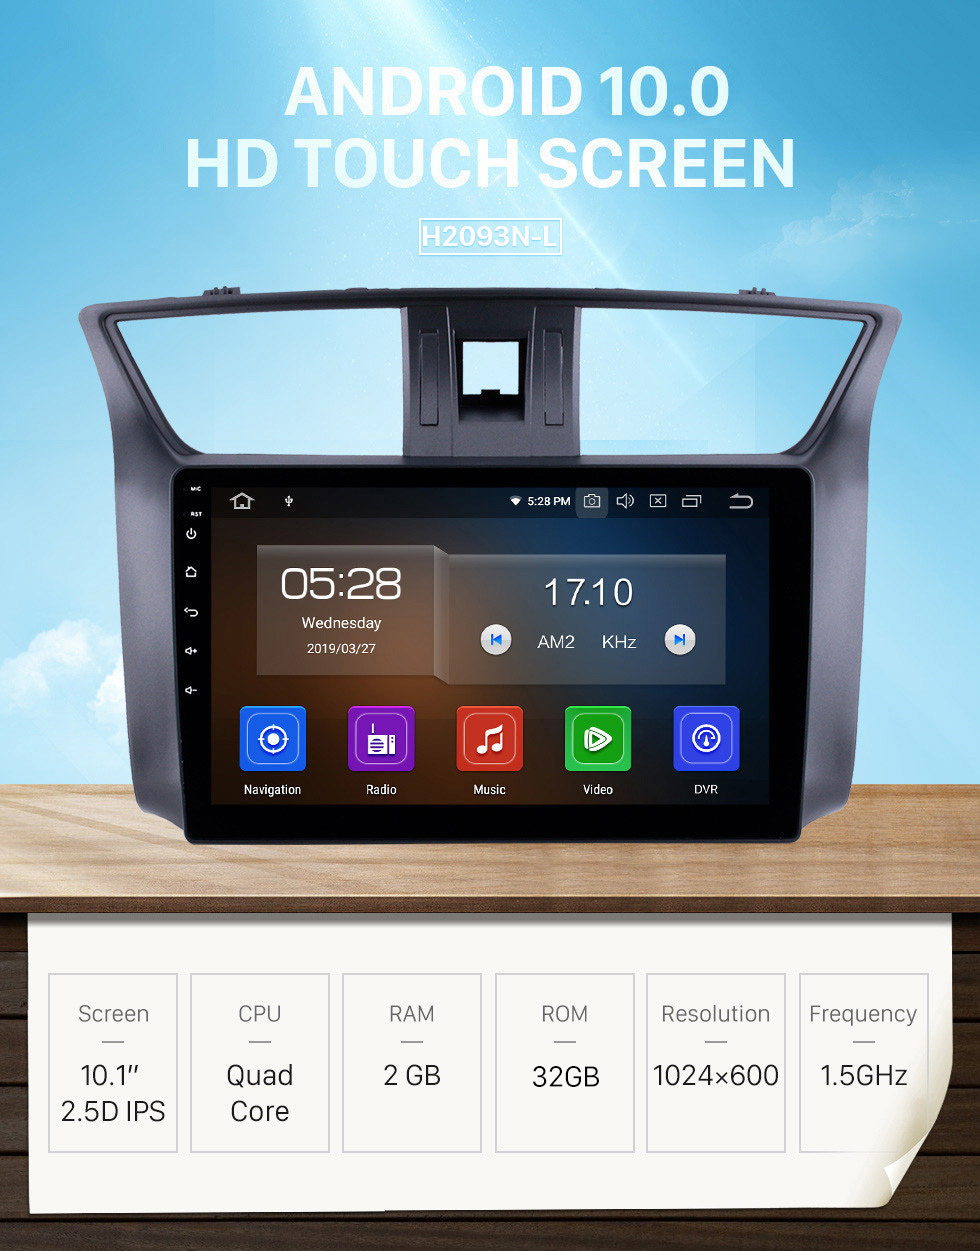 Seicane 10.1 Inch HD Touchscreen GPS Navigation System Head Unit android 10.0 2012-2016 Nissan Slyphy Bluetooth Radio Car Stereo Music Support 4G WIFI OBD2 Rearview Camera Steering Wheel Control